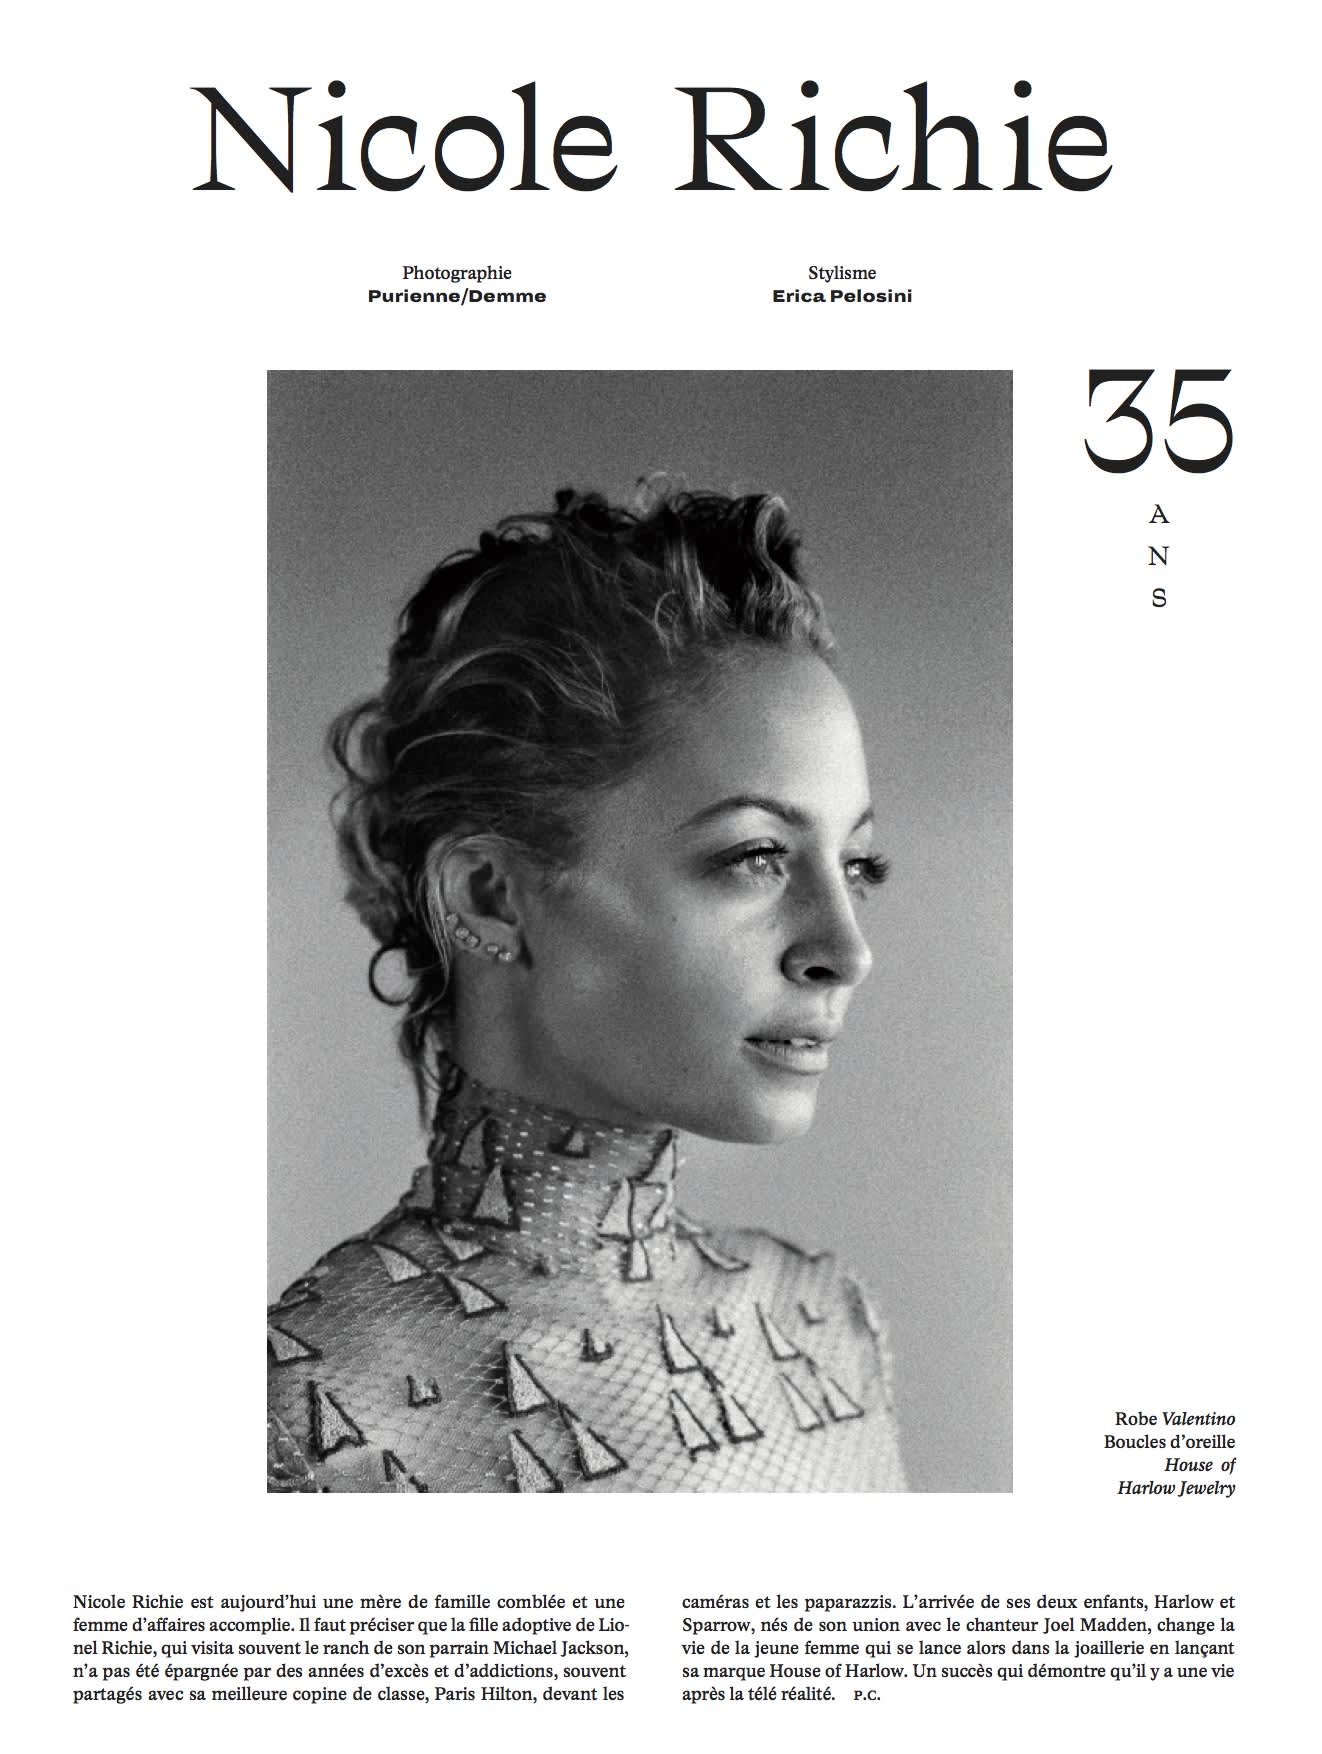 L'Officiel 95th Anniversary Issue